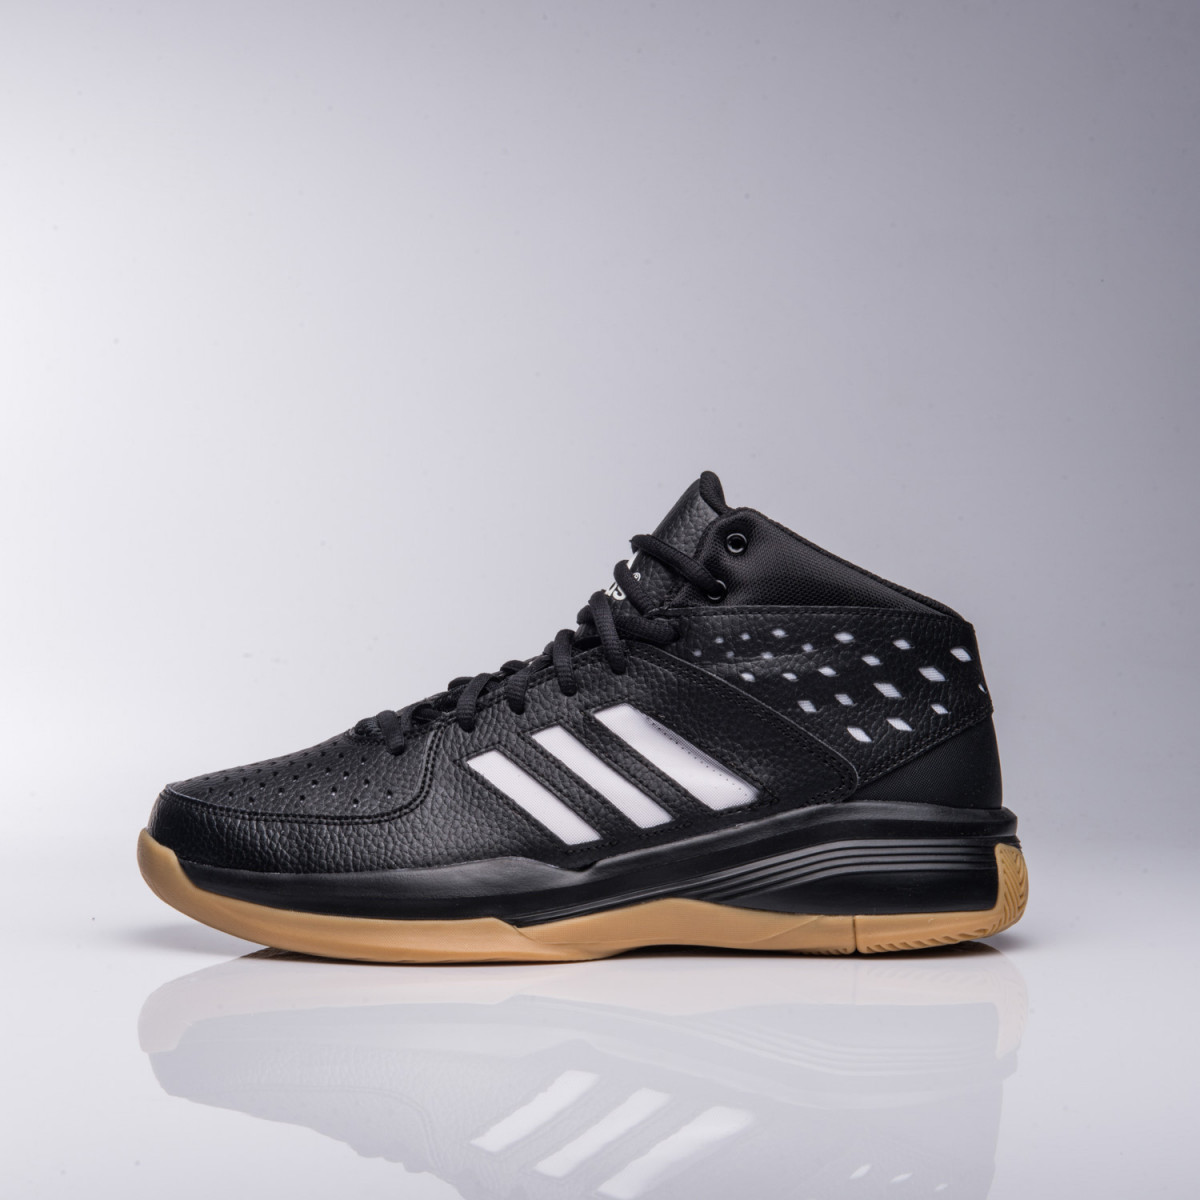 ZAPATILLAS ADIDAS COURT FURY 2DA SELECCION